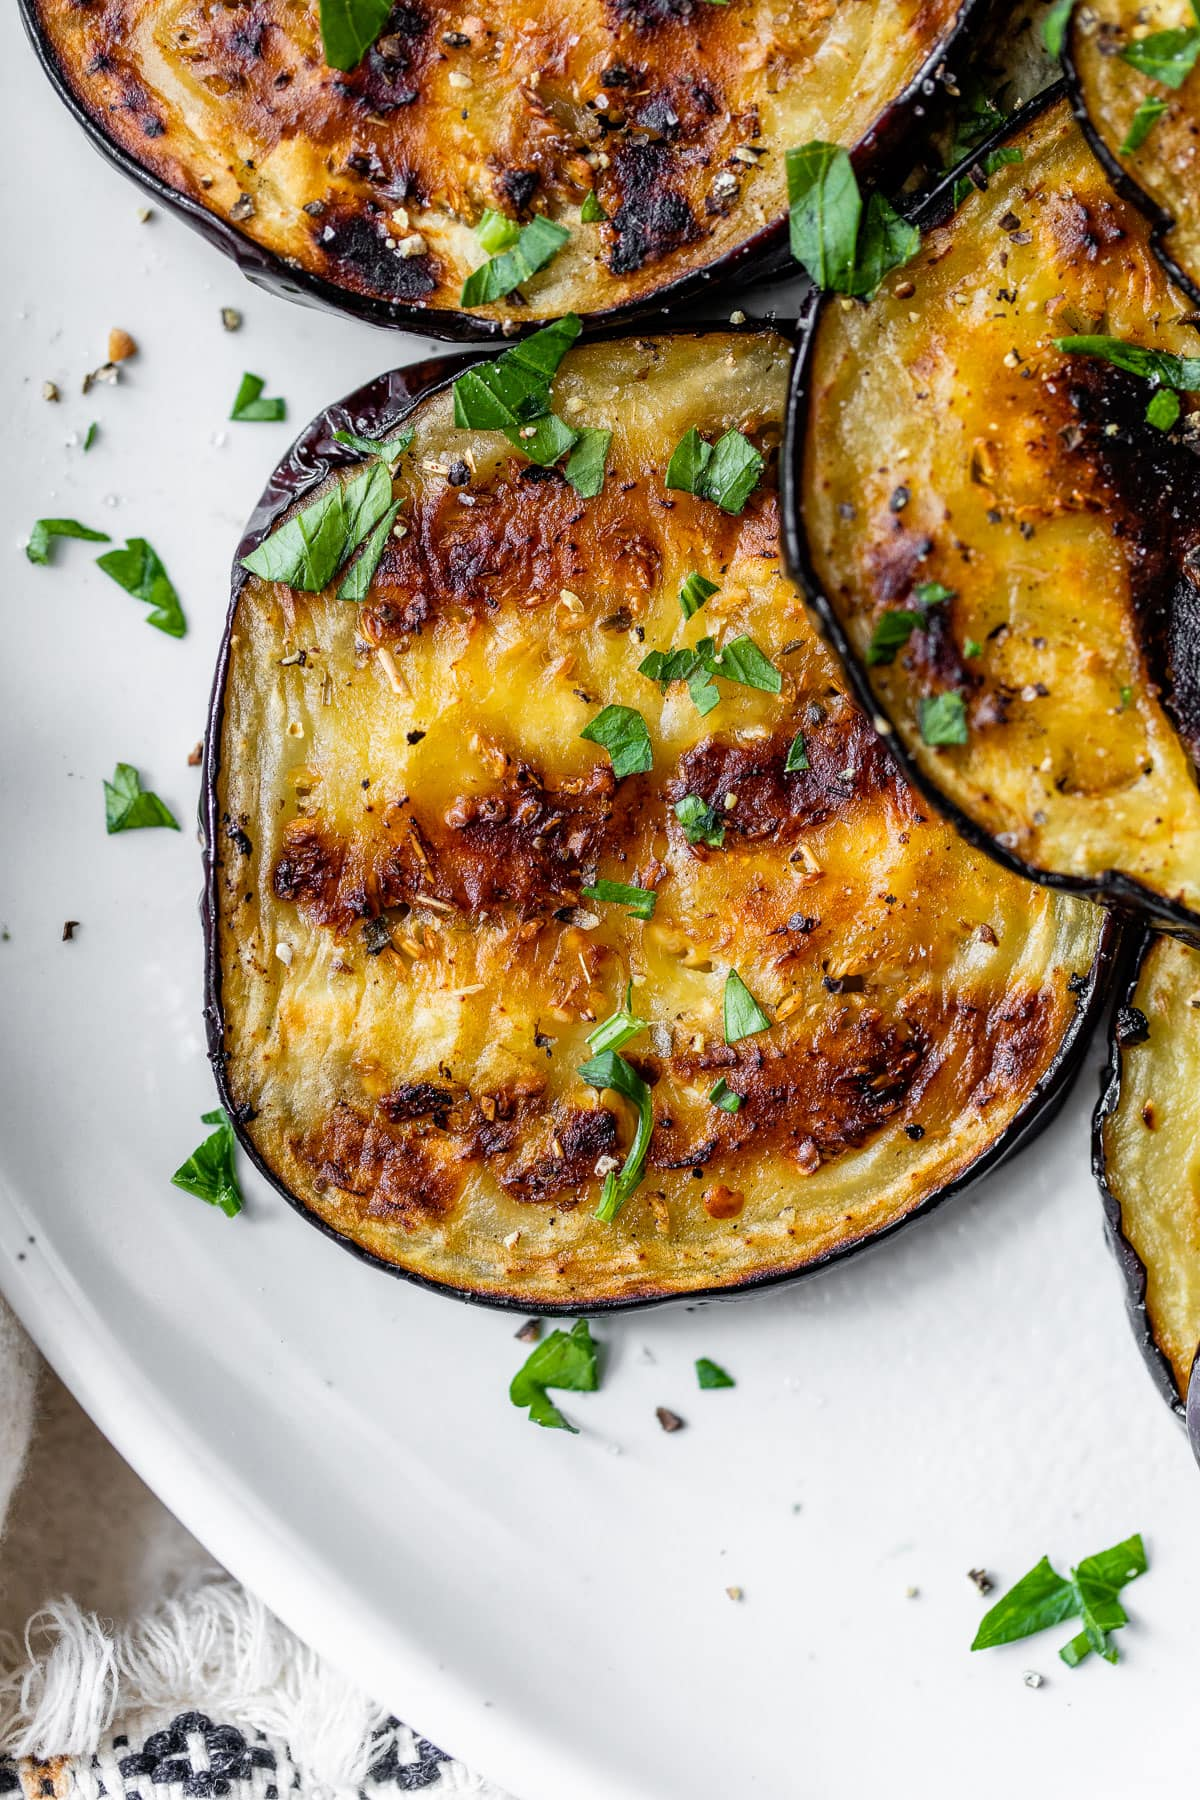 slices of eggplant grilled for dinner on a plate